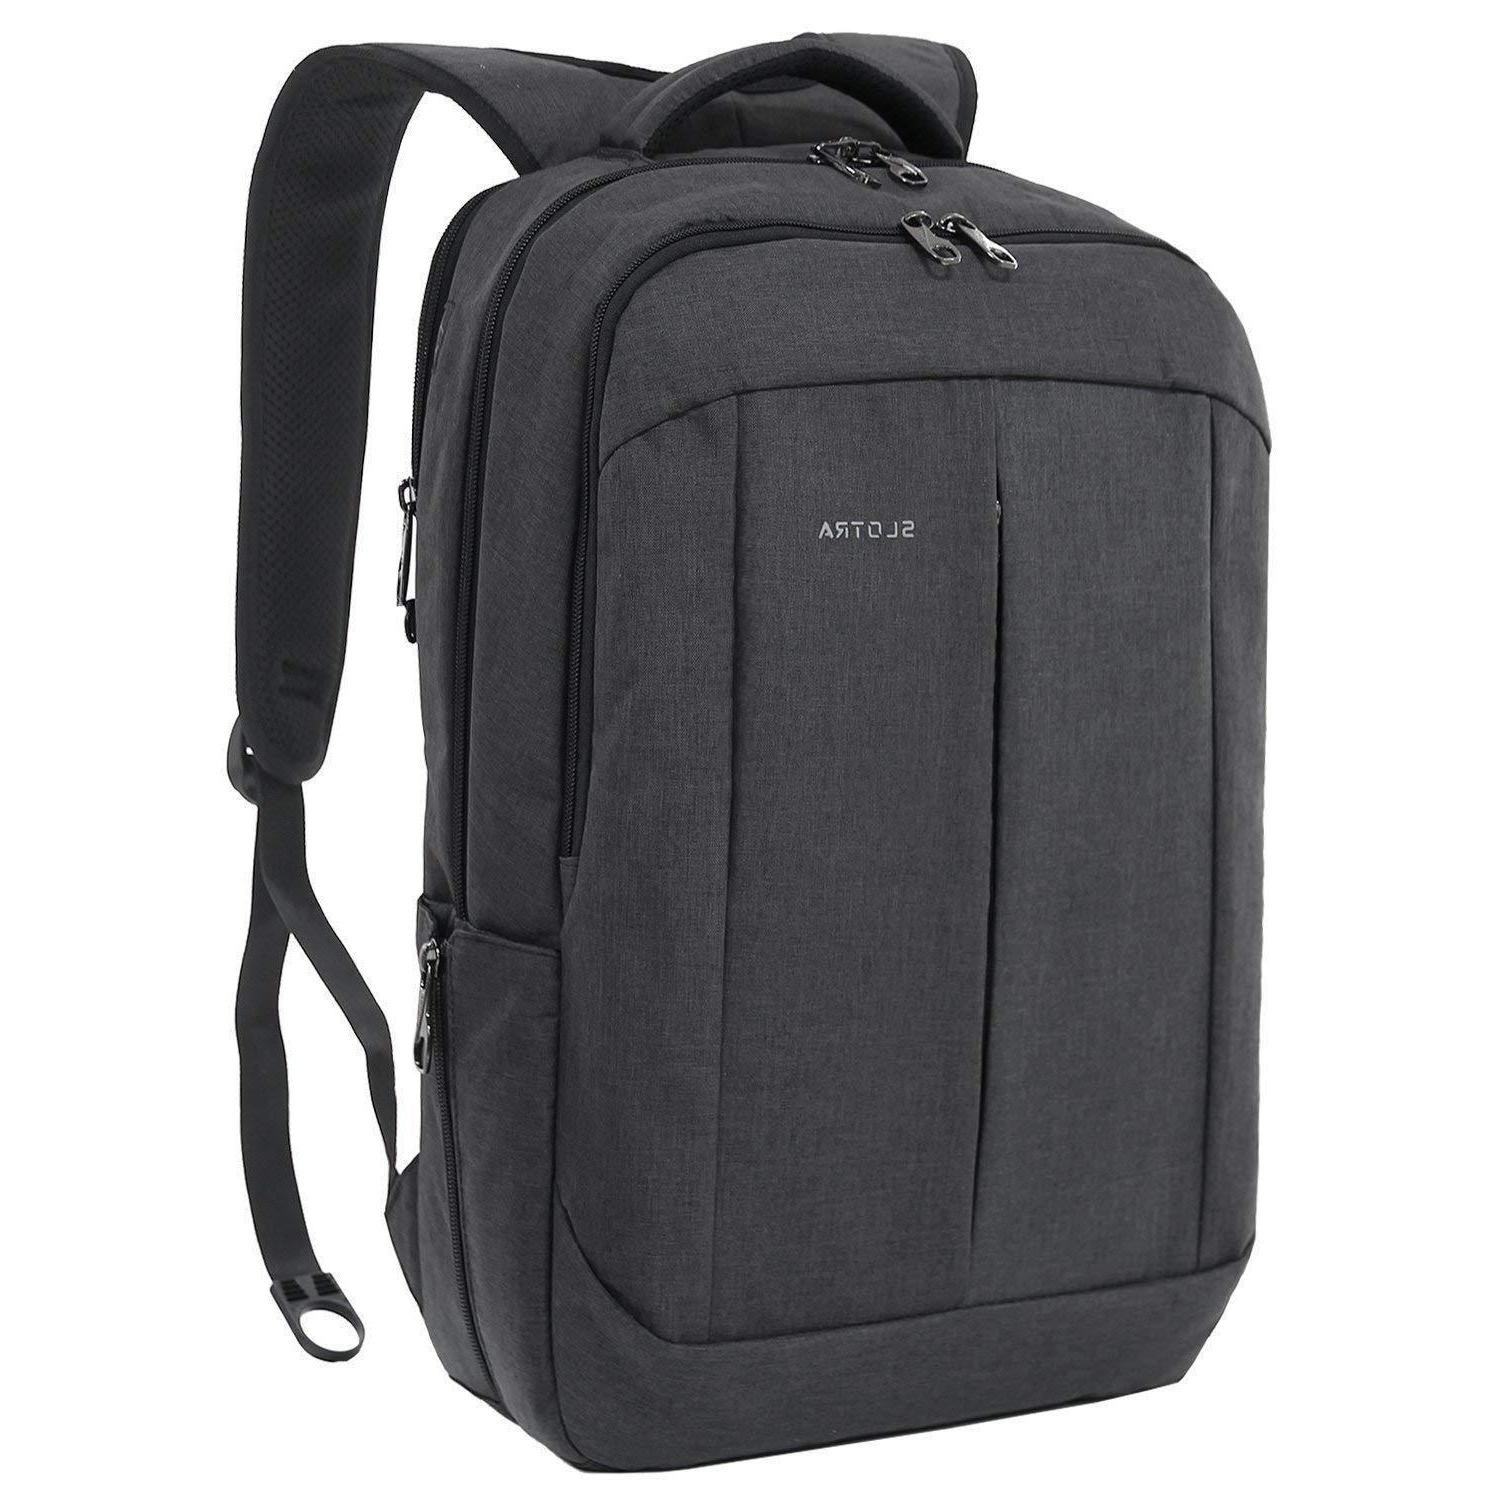 17 inch laptop backpack business travel rucksack